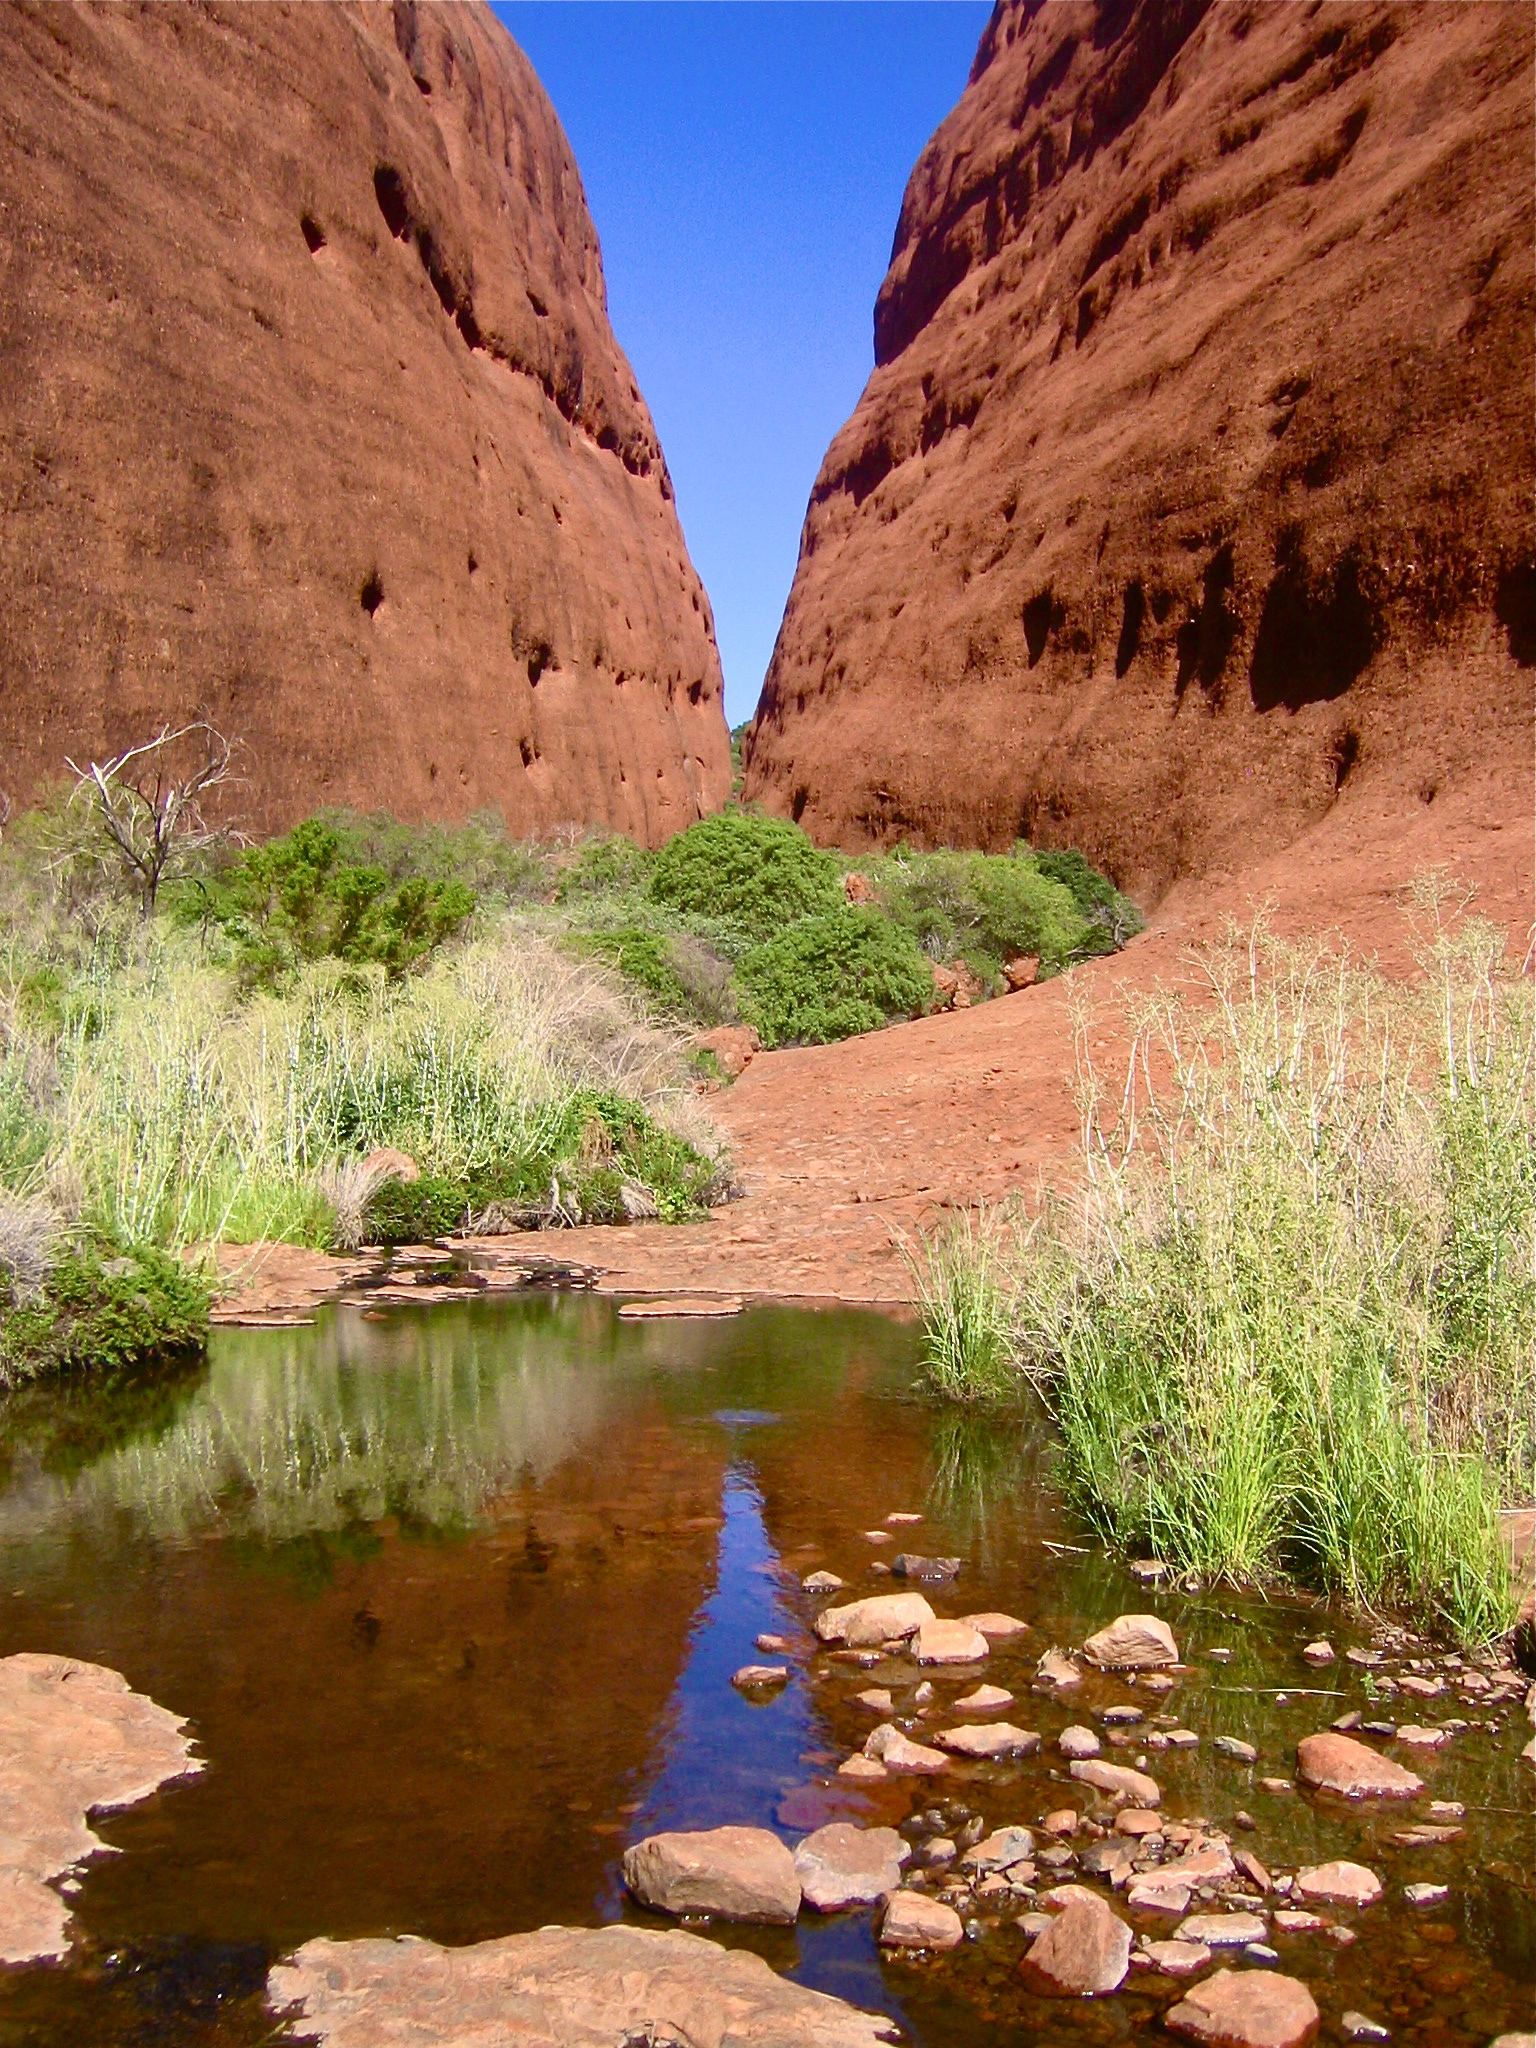 The Australian Outback Australia Kata Tjuta The Olgas aroundtheworldwithjustin.com